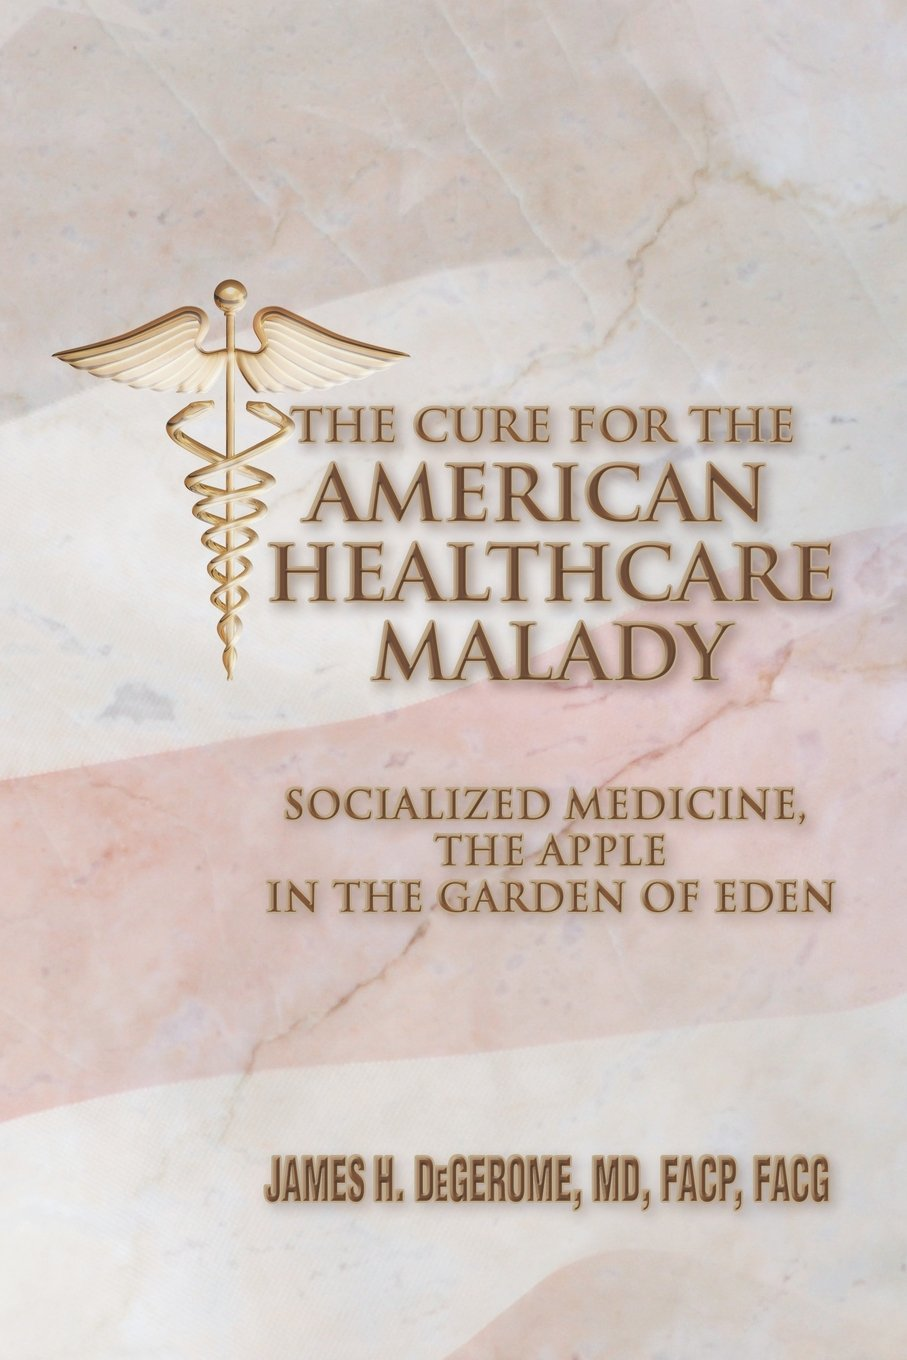 The Cure for the American Healthcare Malady